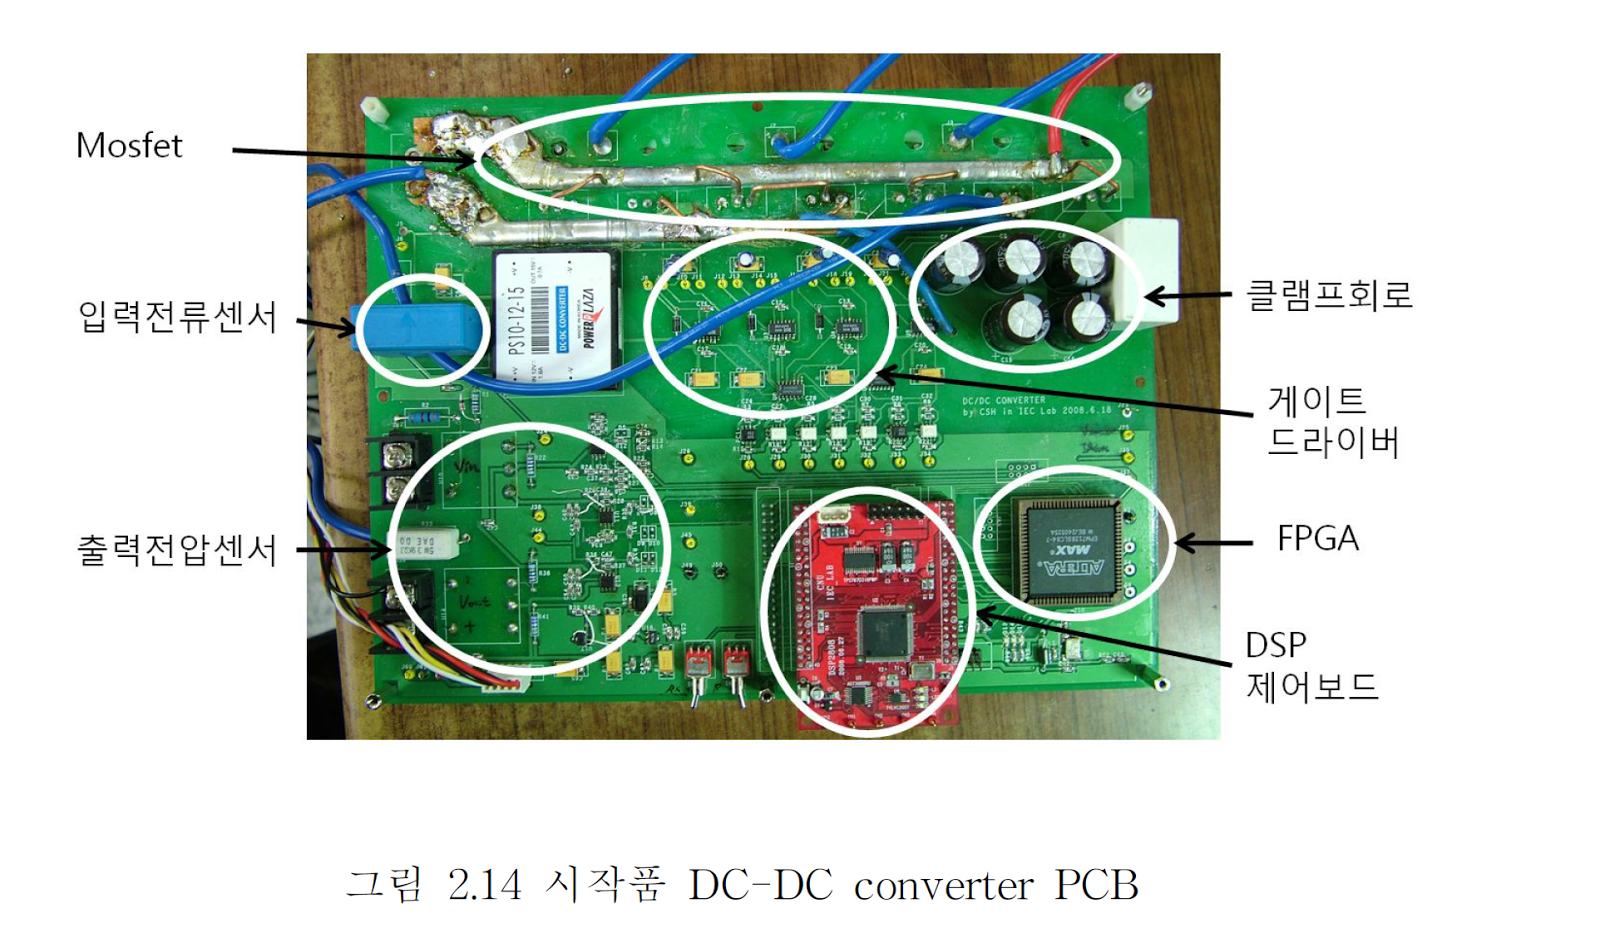 ac to dc converter thesis A multiple-input single-output dc-dc converter for the dc house project a thesis presented to the faculty of california polytechnic state university.